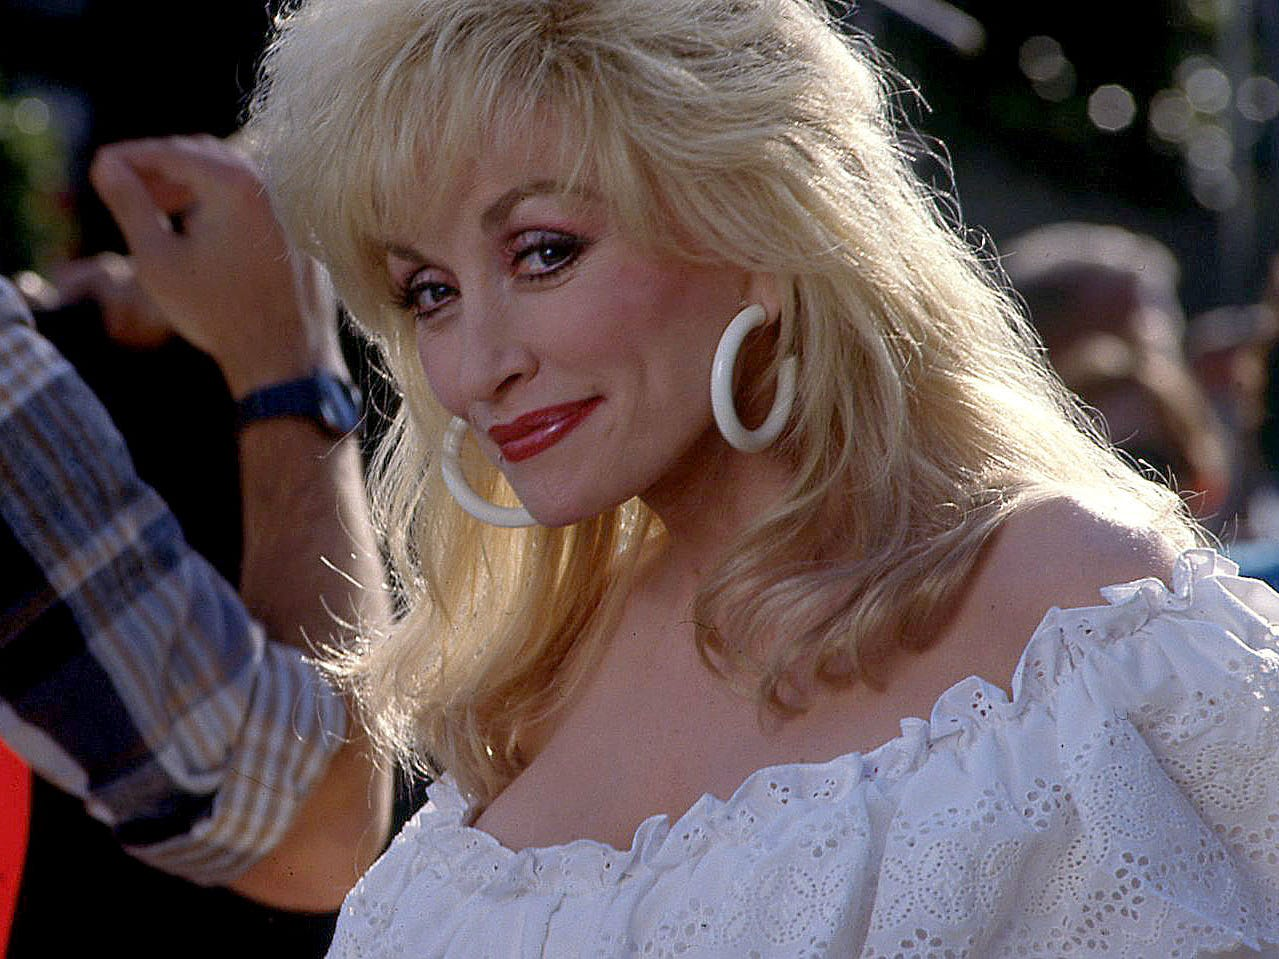 Dolly Parton pauses for a photo while shooting a commercial for the state of Tennessee at Dollywood Nov. 15, 1991.